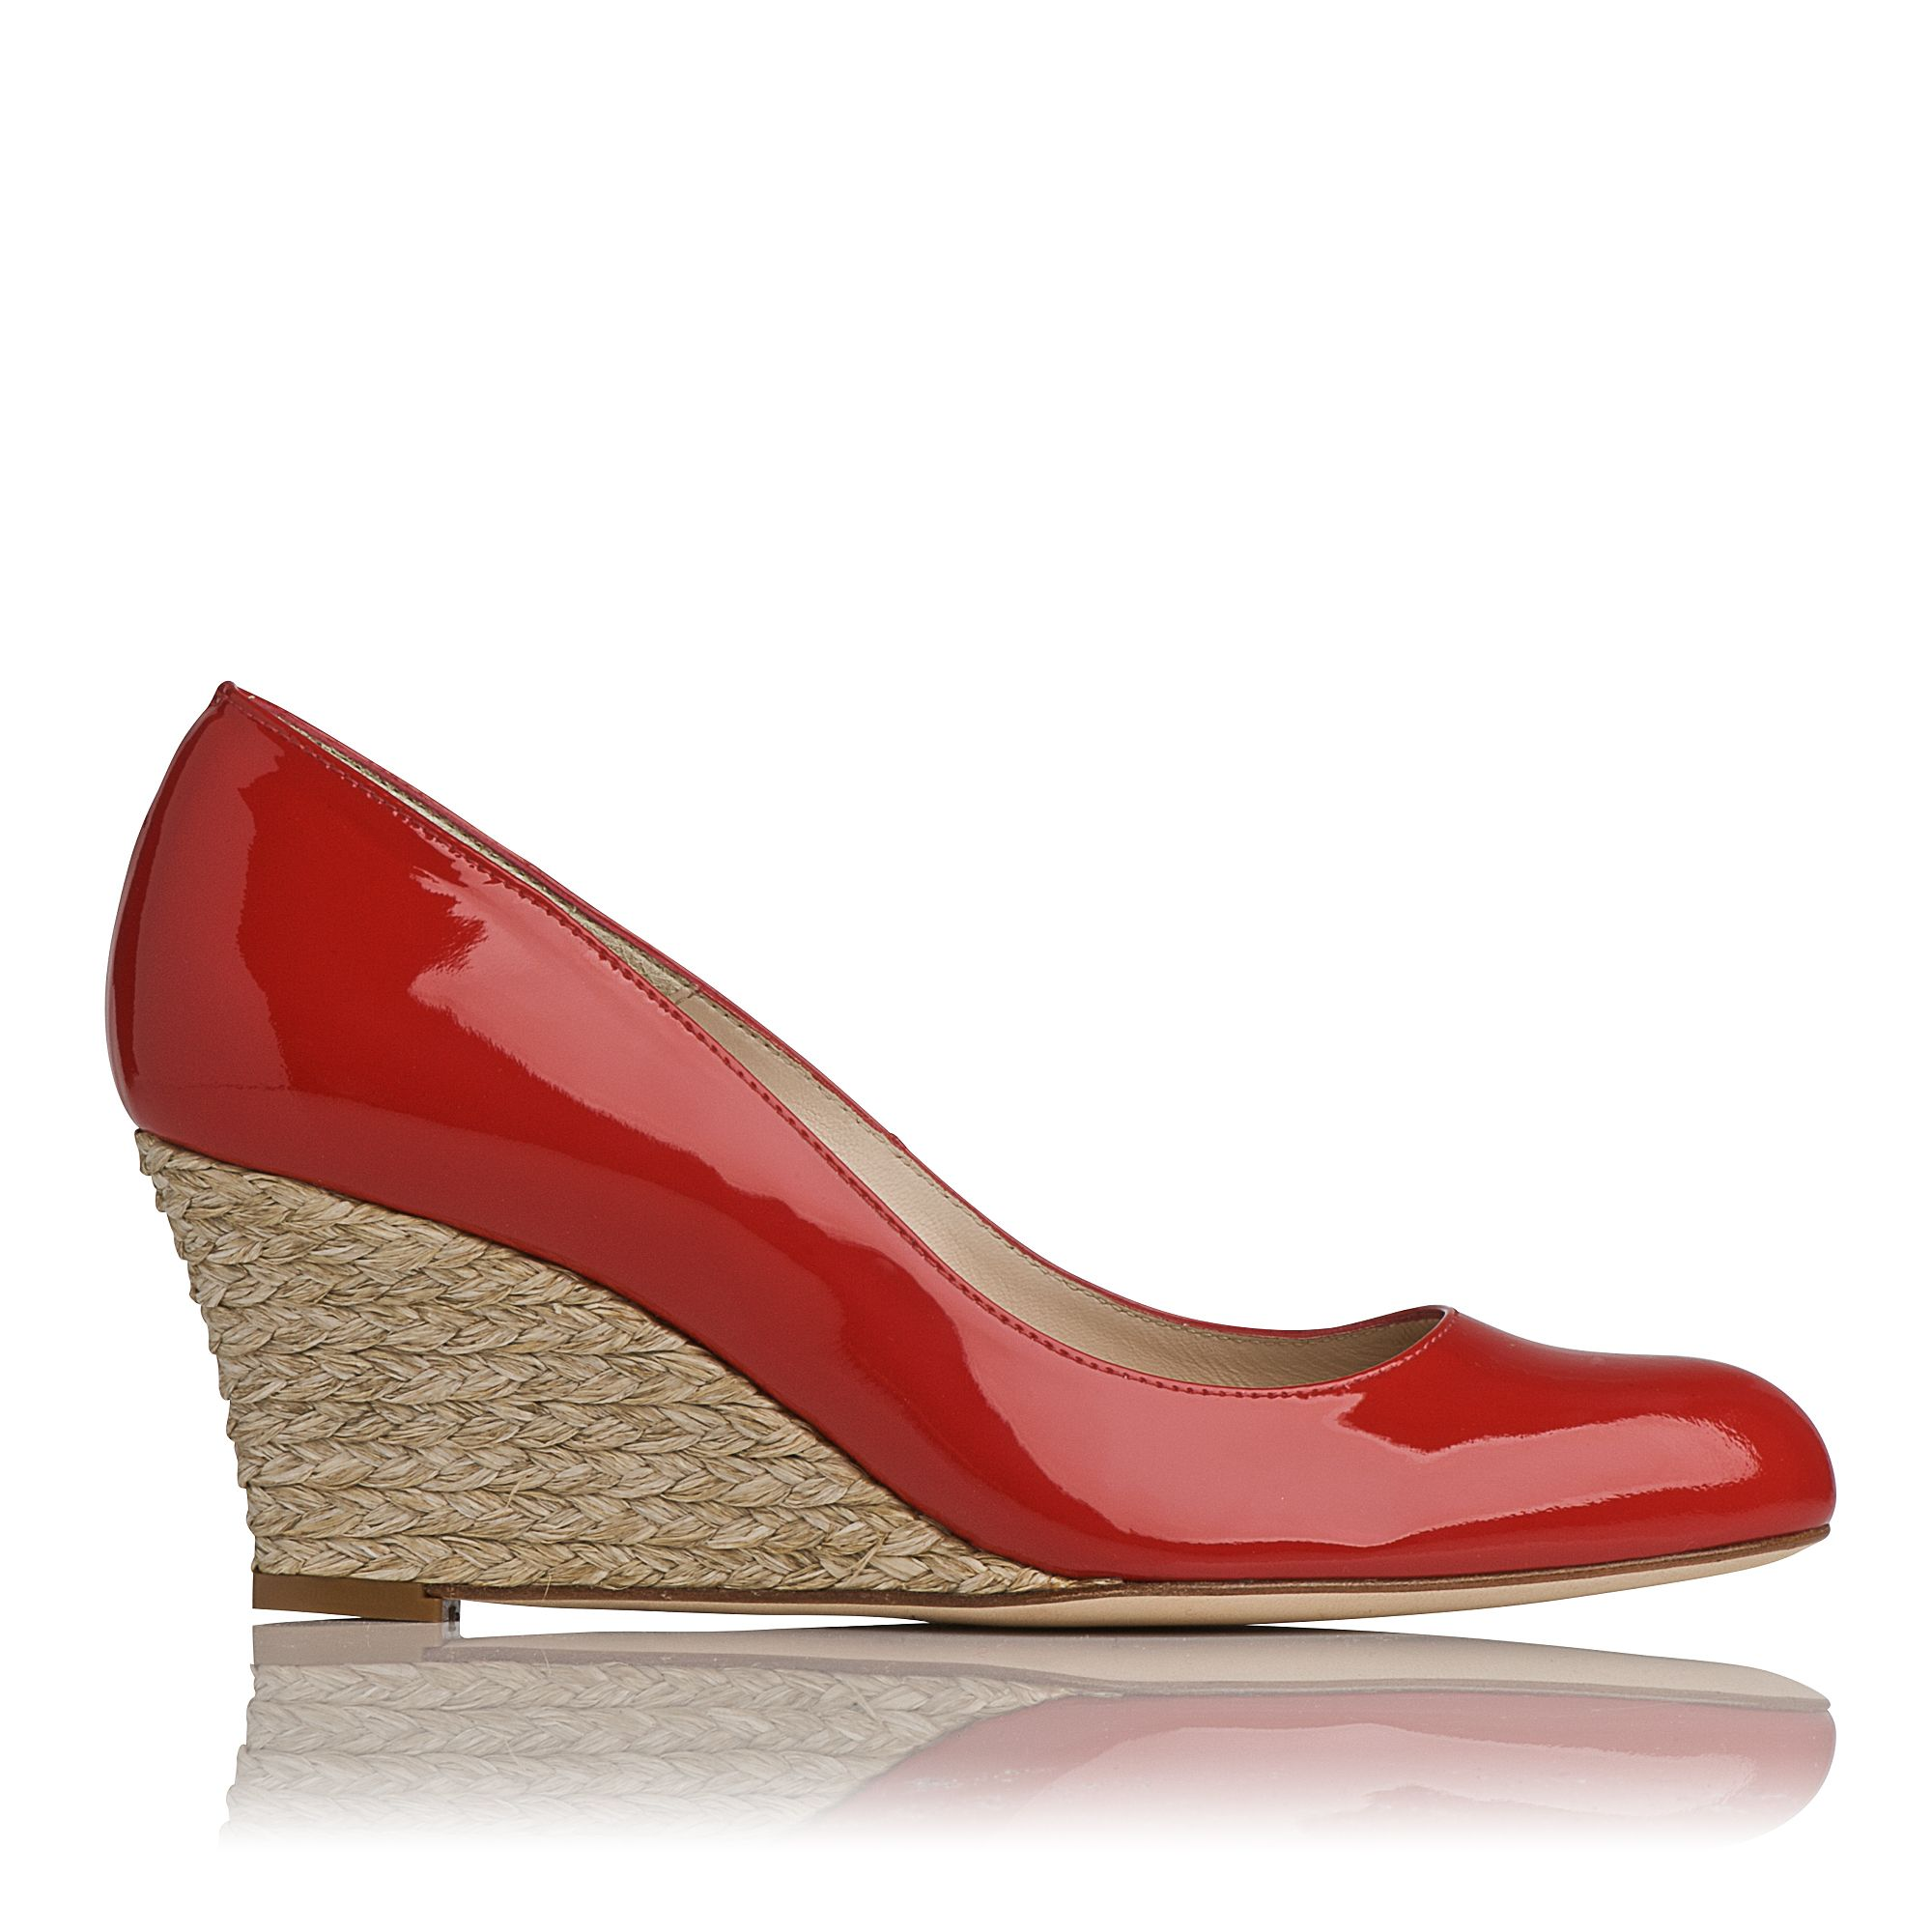 Zella round toe court shoes